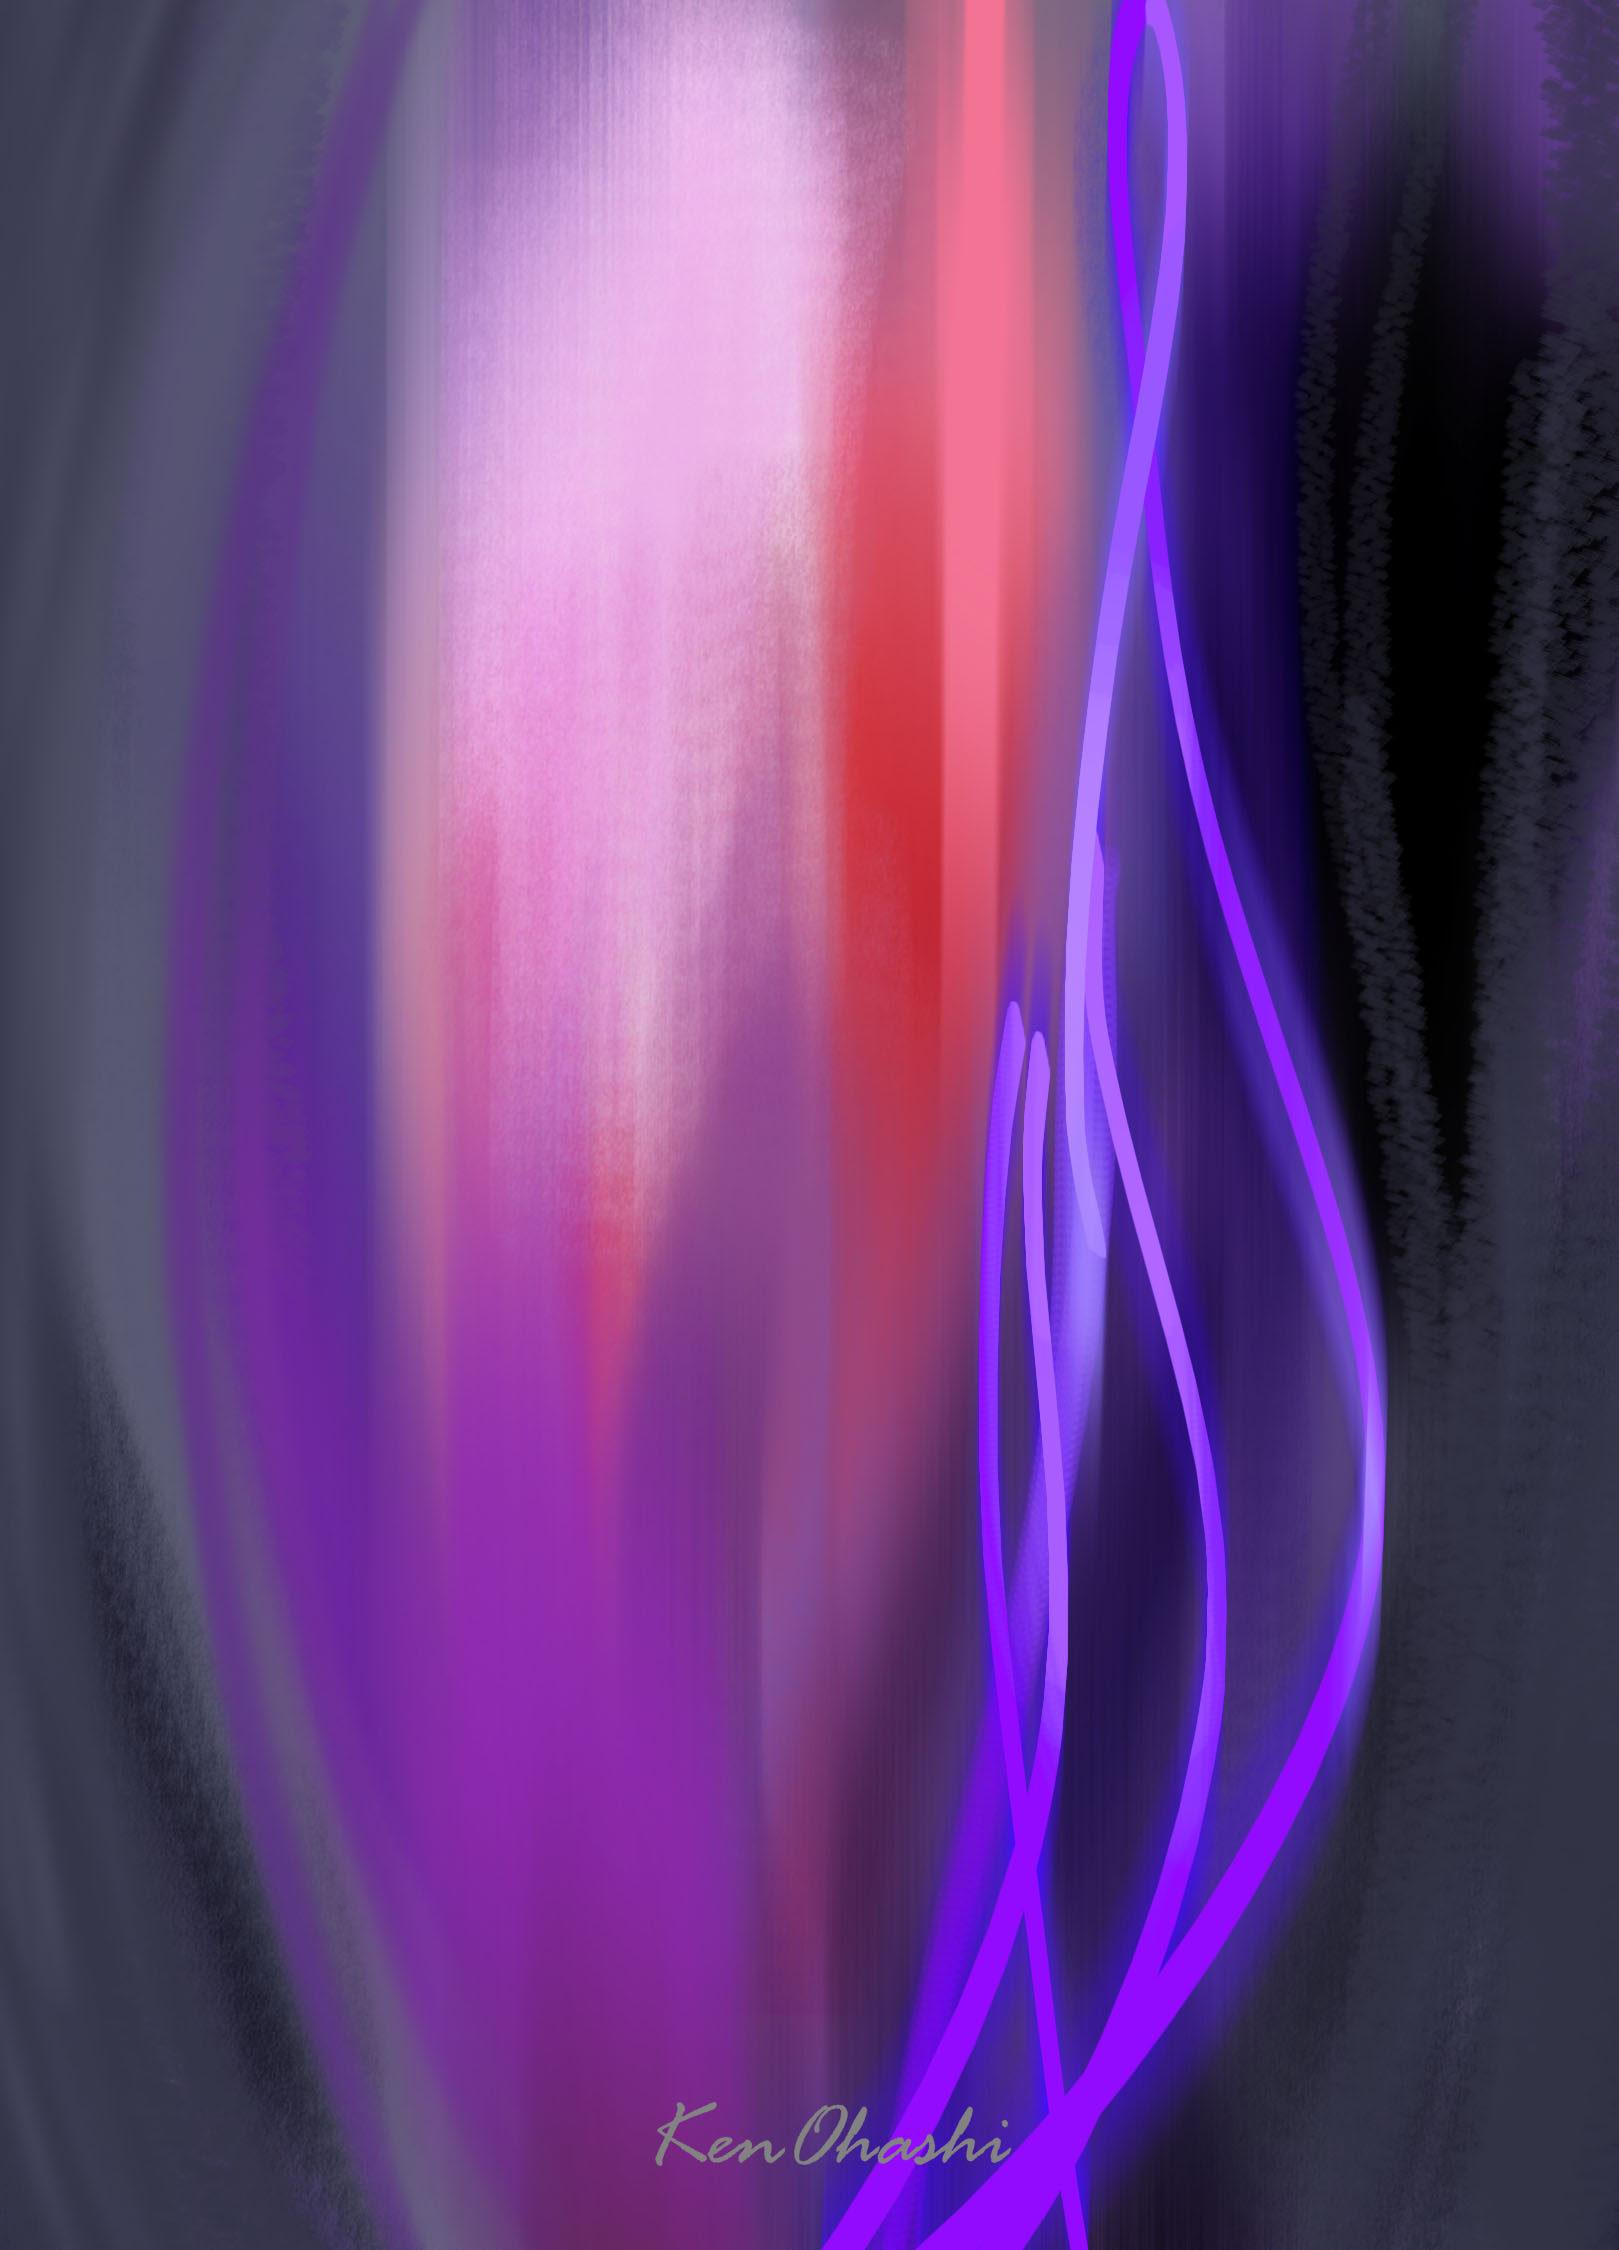 Abstraction_20100704_06